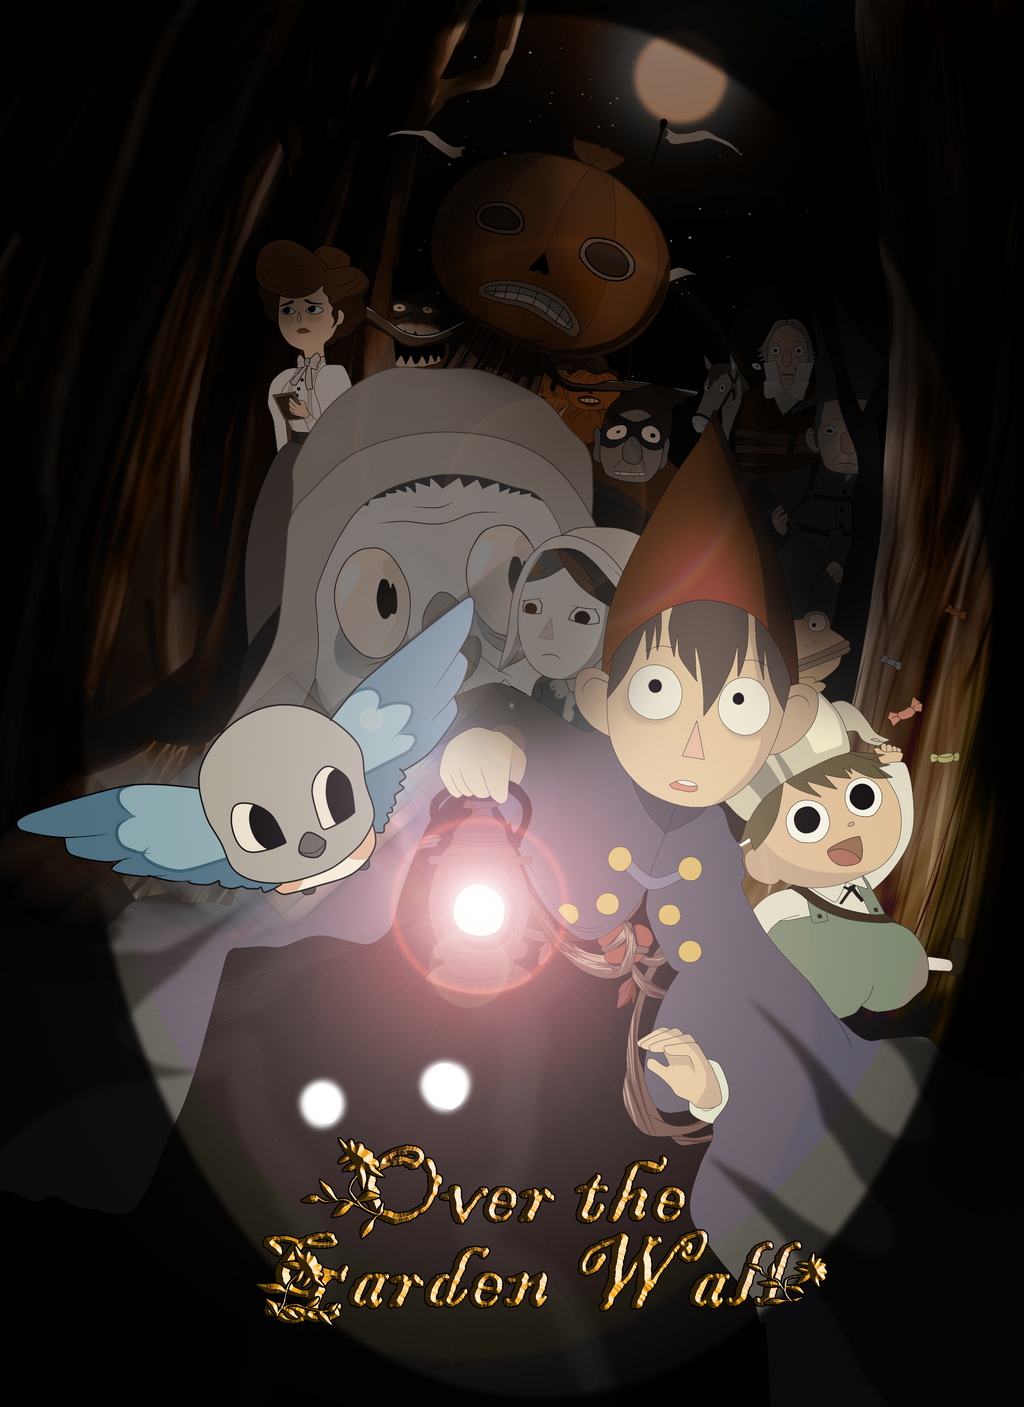 Otgw Follow The Path By Muffin Mixer On Deviantart